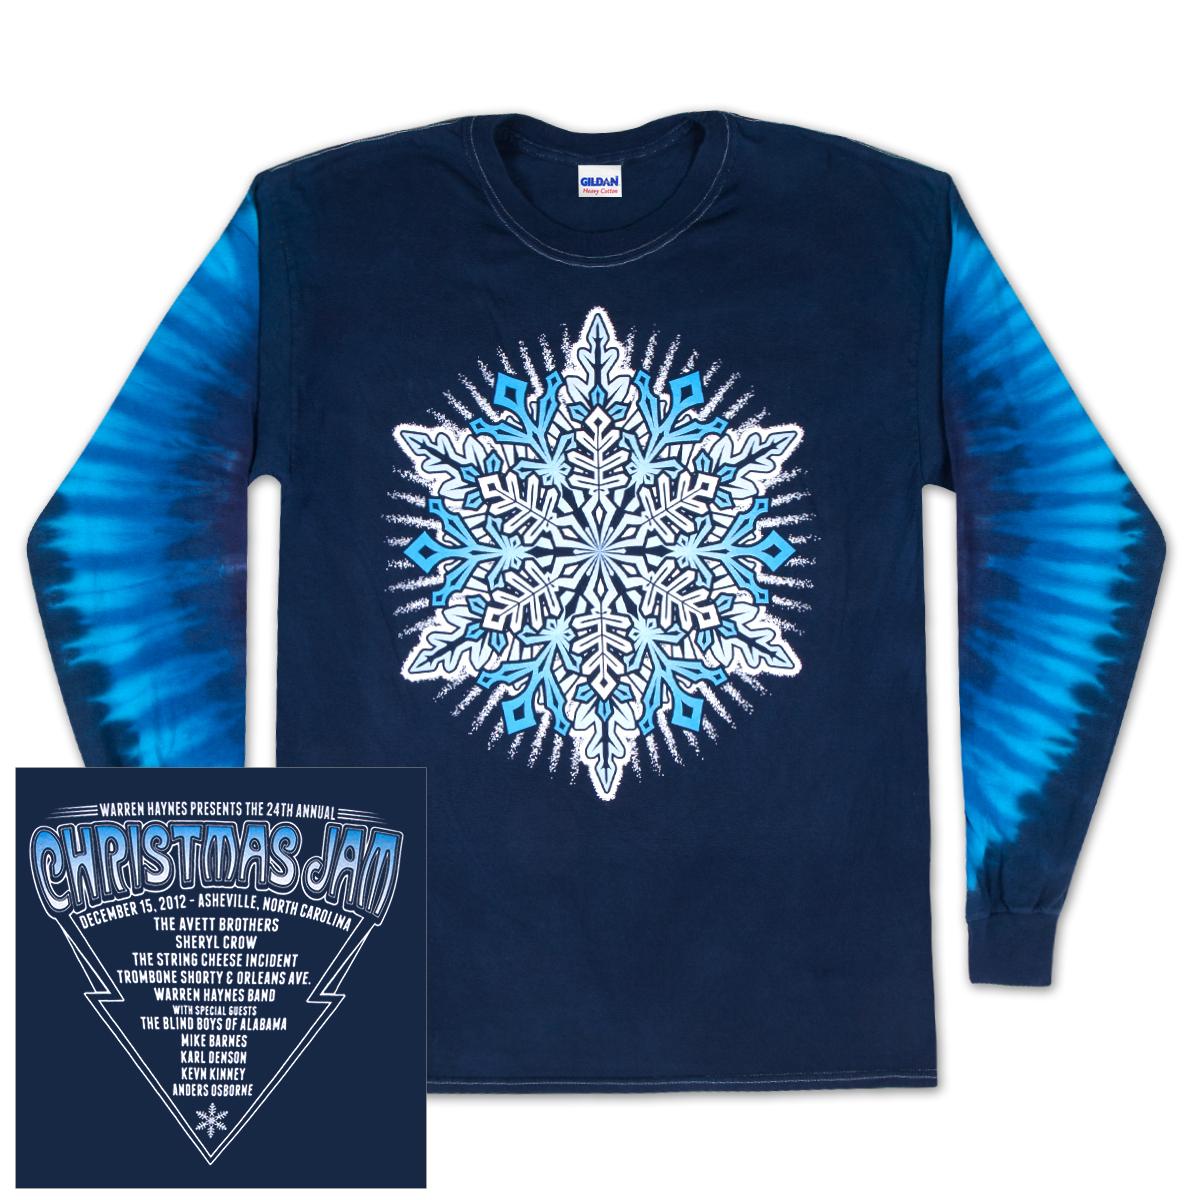 Warren Haynes 2012 Xmas Jam Long-Sleeve Pigment Dye Shirt.